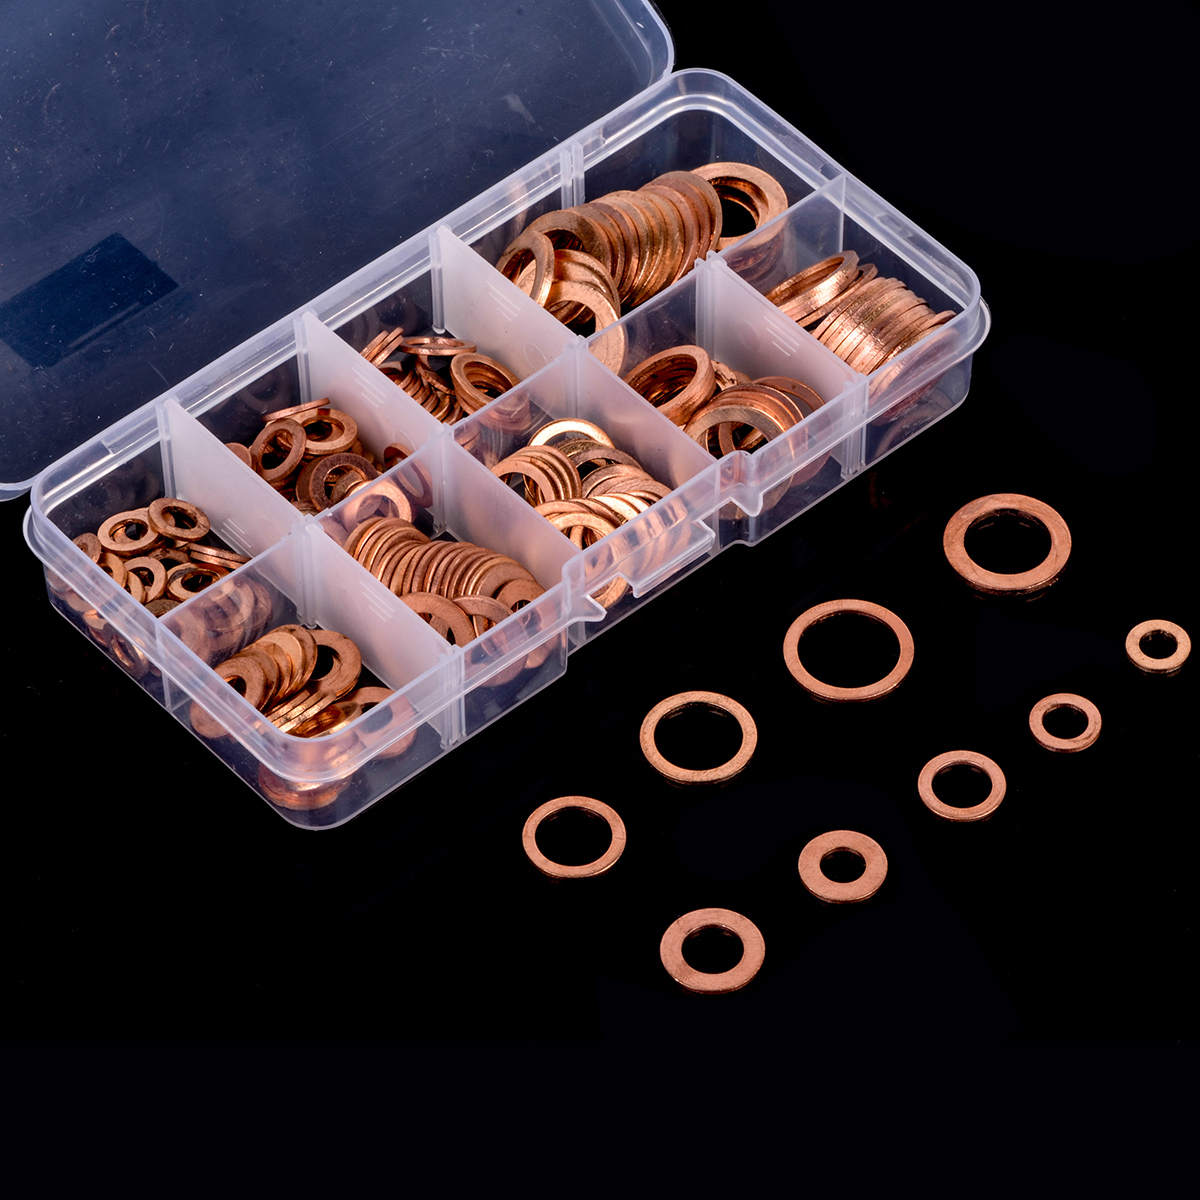 200pc Copper Washer Gasket Set Assorted Flat Ring Solid Seals Placemat Bowl Plug Oil Seal Parts Tool Fittings Hardware Fastener200pc Copper Washer Gasket Set Assorted Flat Ring Solid Seals Placemat Bowl Plug Oil Seal Parts Tool Fittings Hardware Fastener